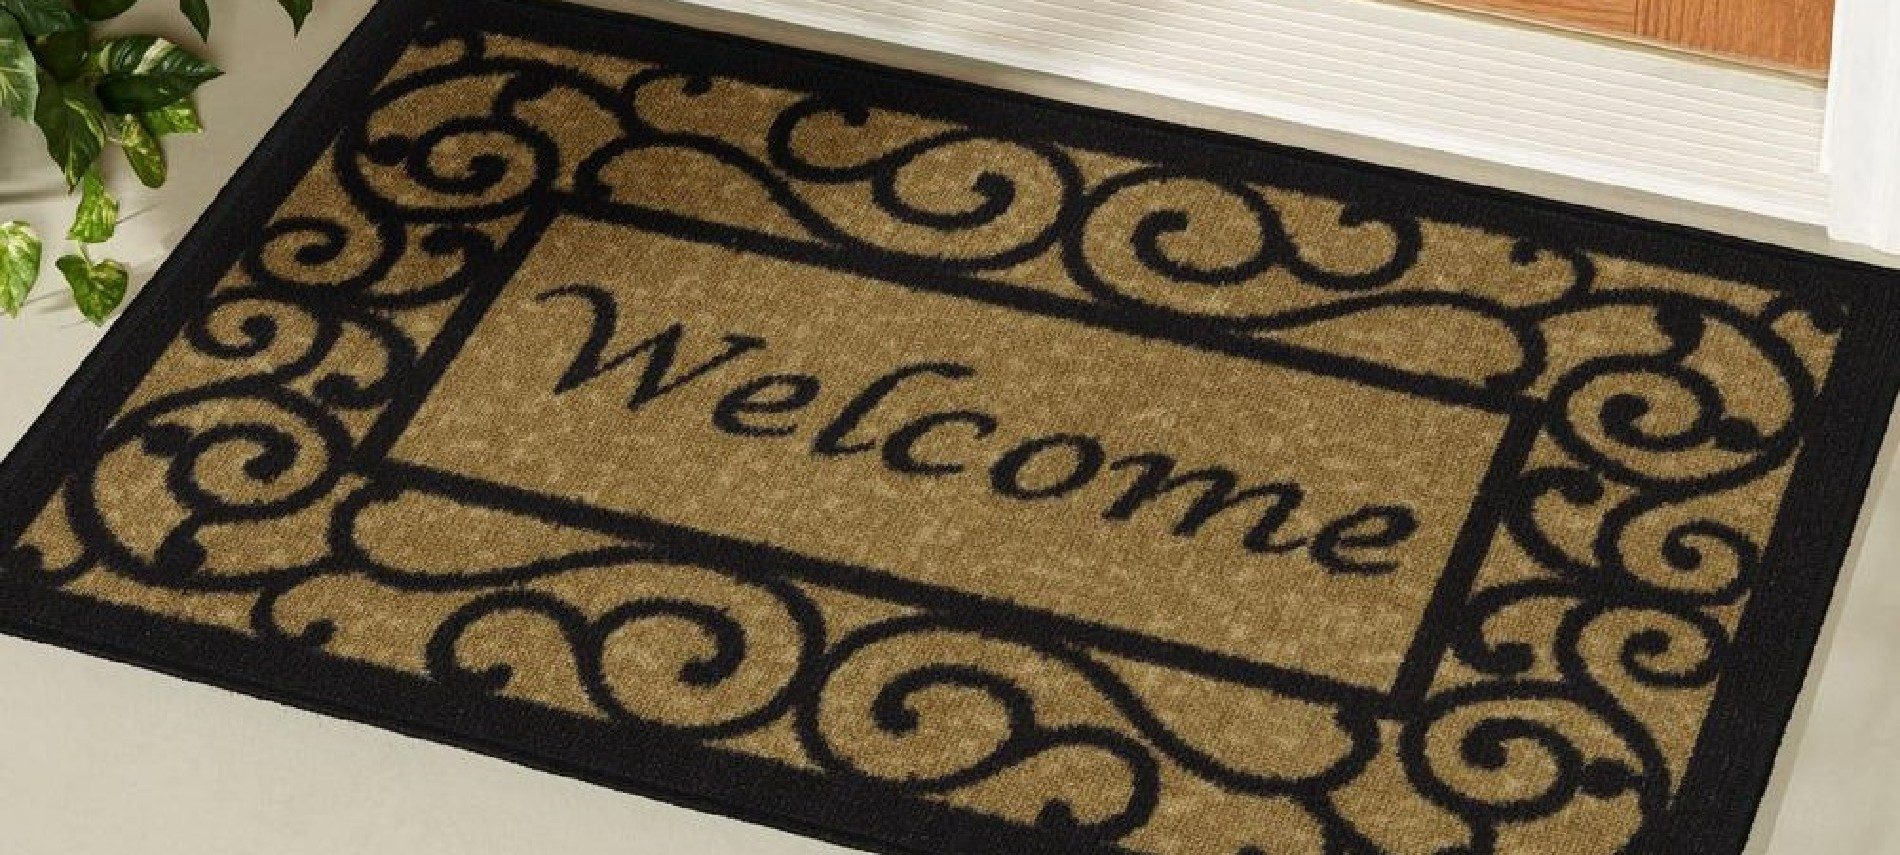 Large brown and black welcome mat with scroll design on the floor in front of a door